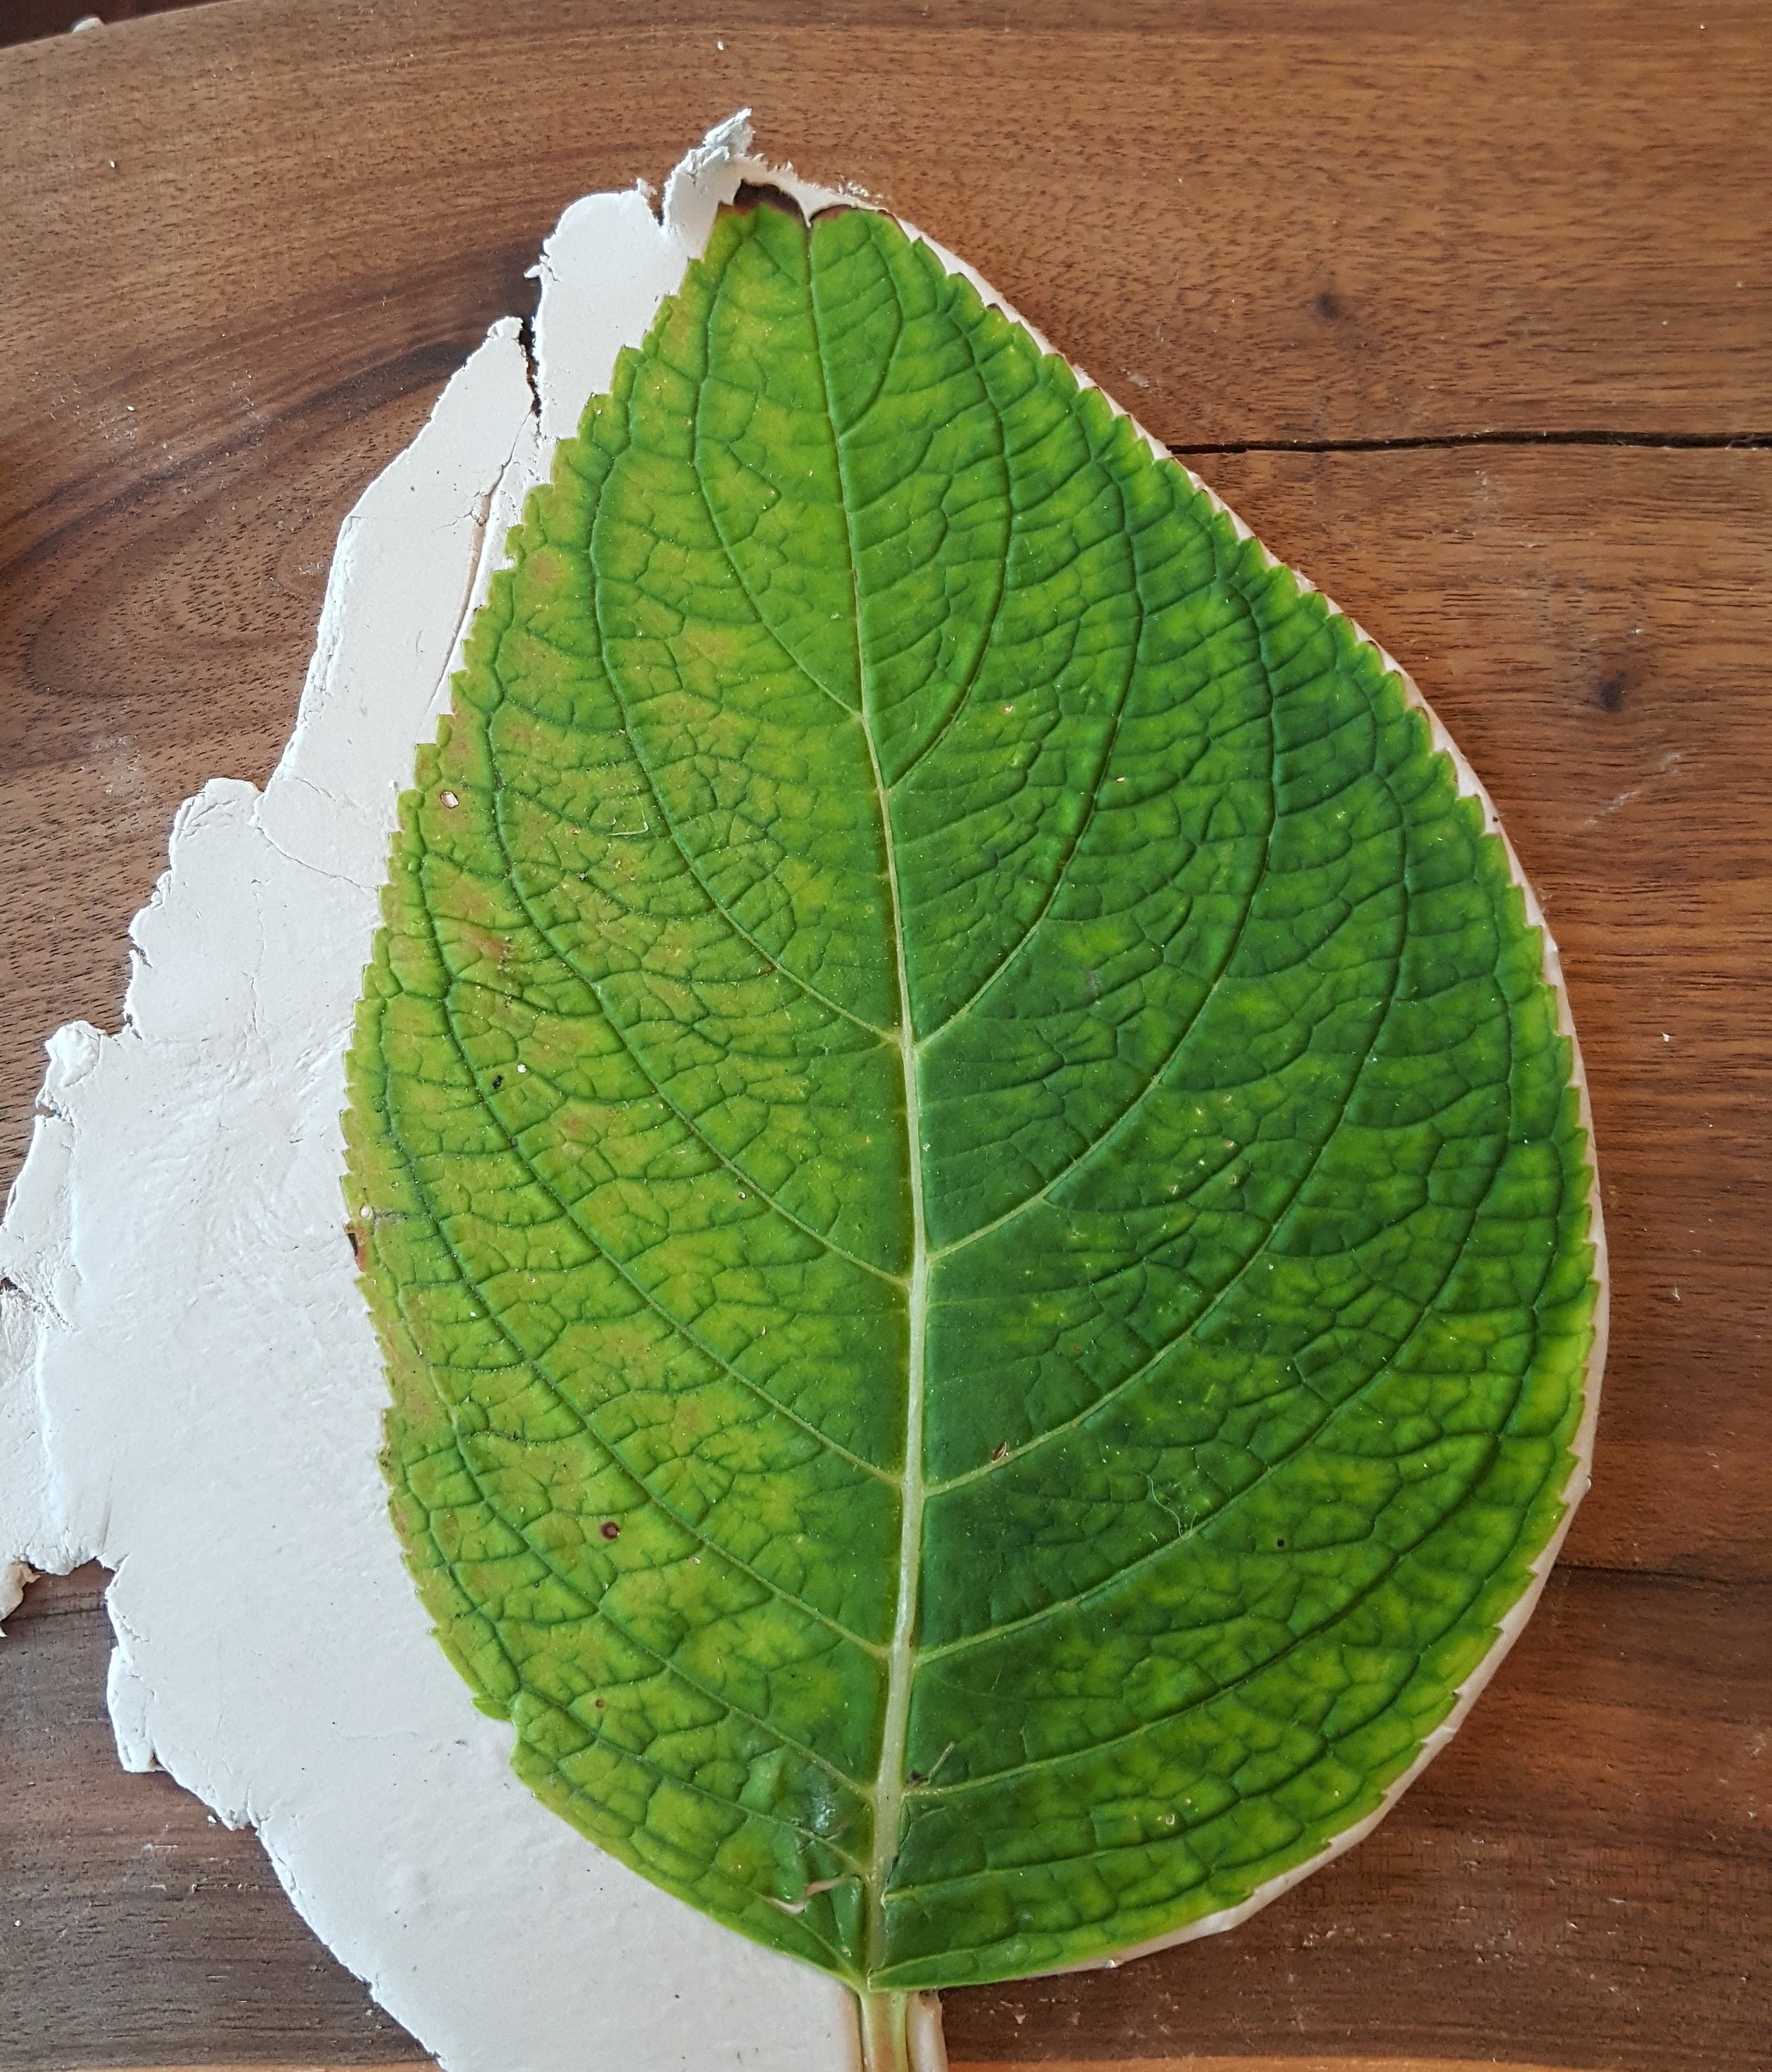 Trimming clay from the hydrangea leaf